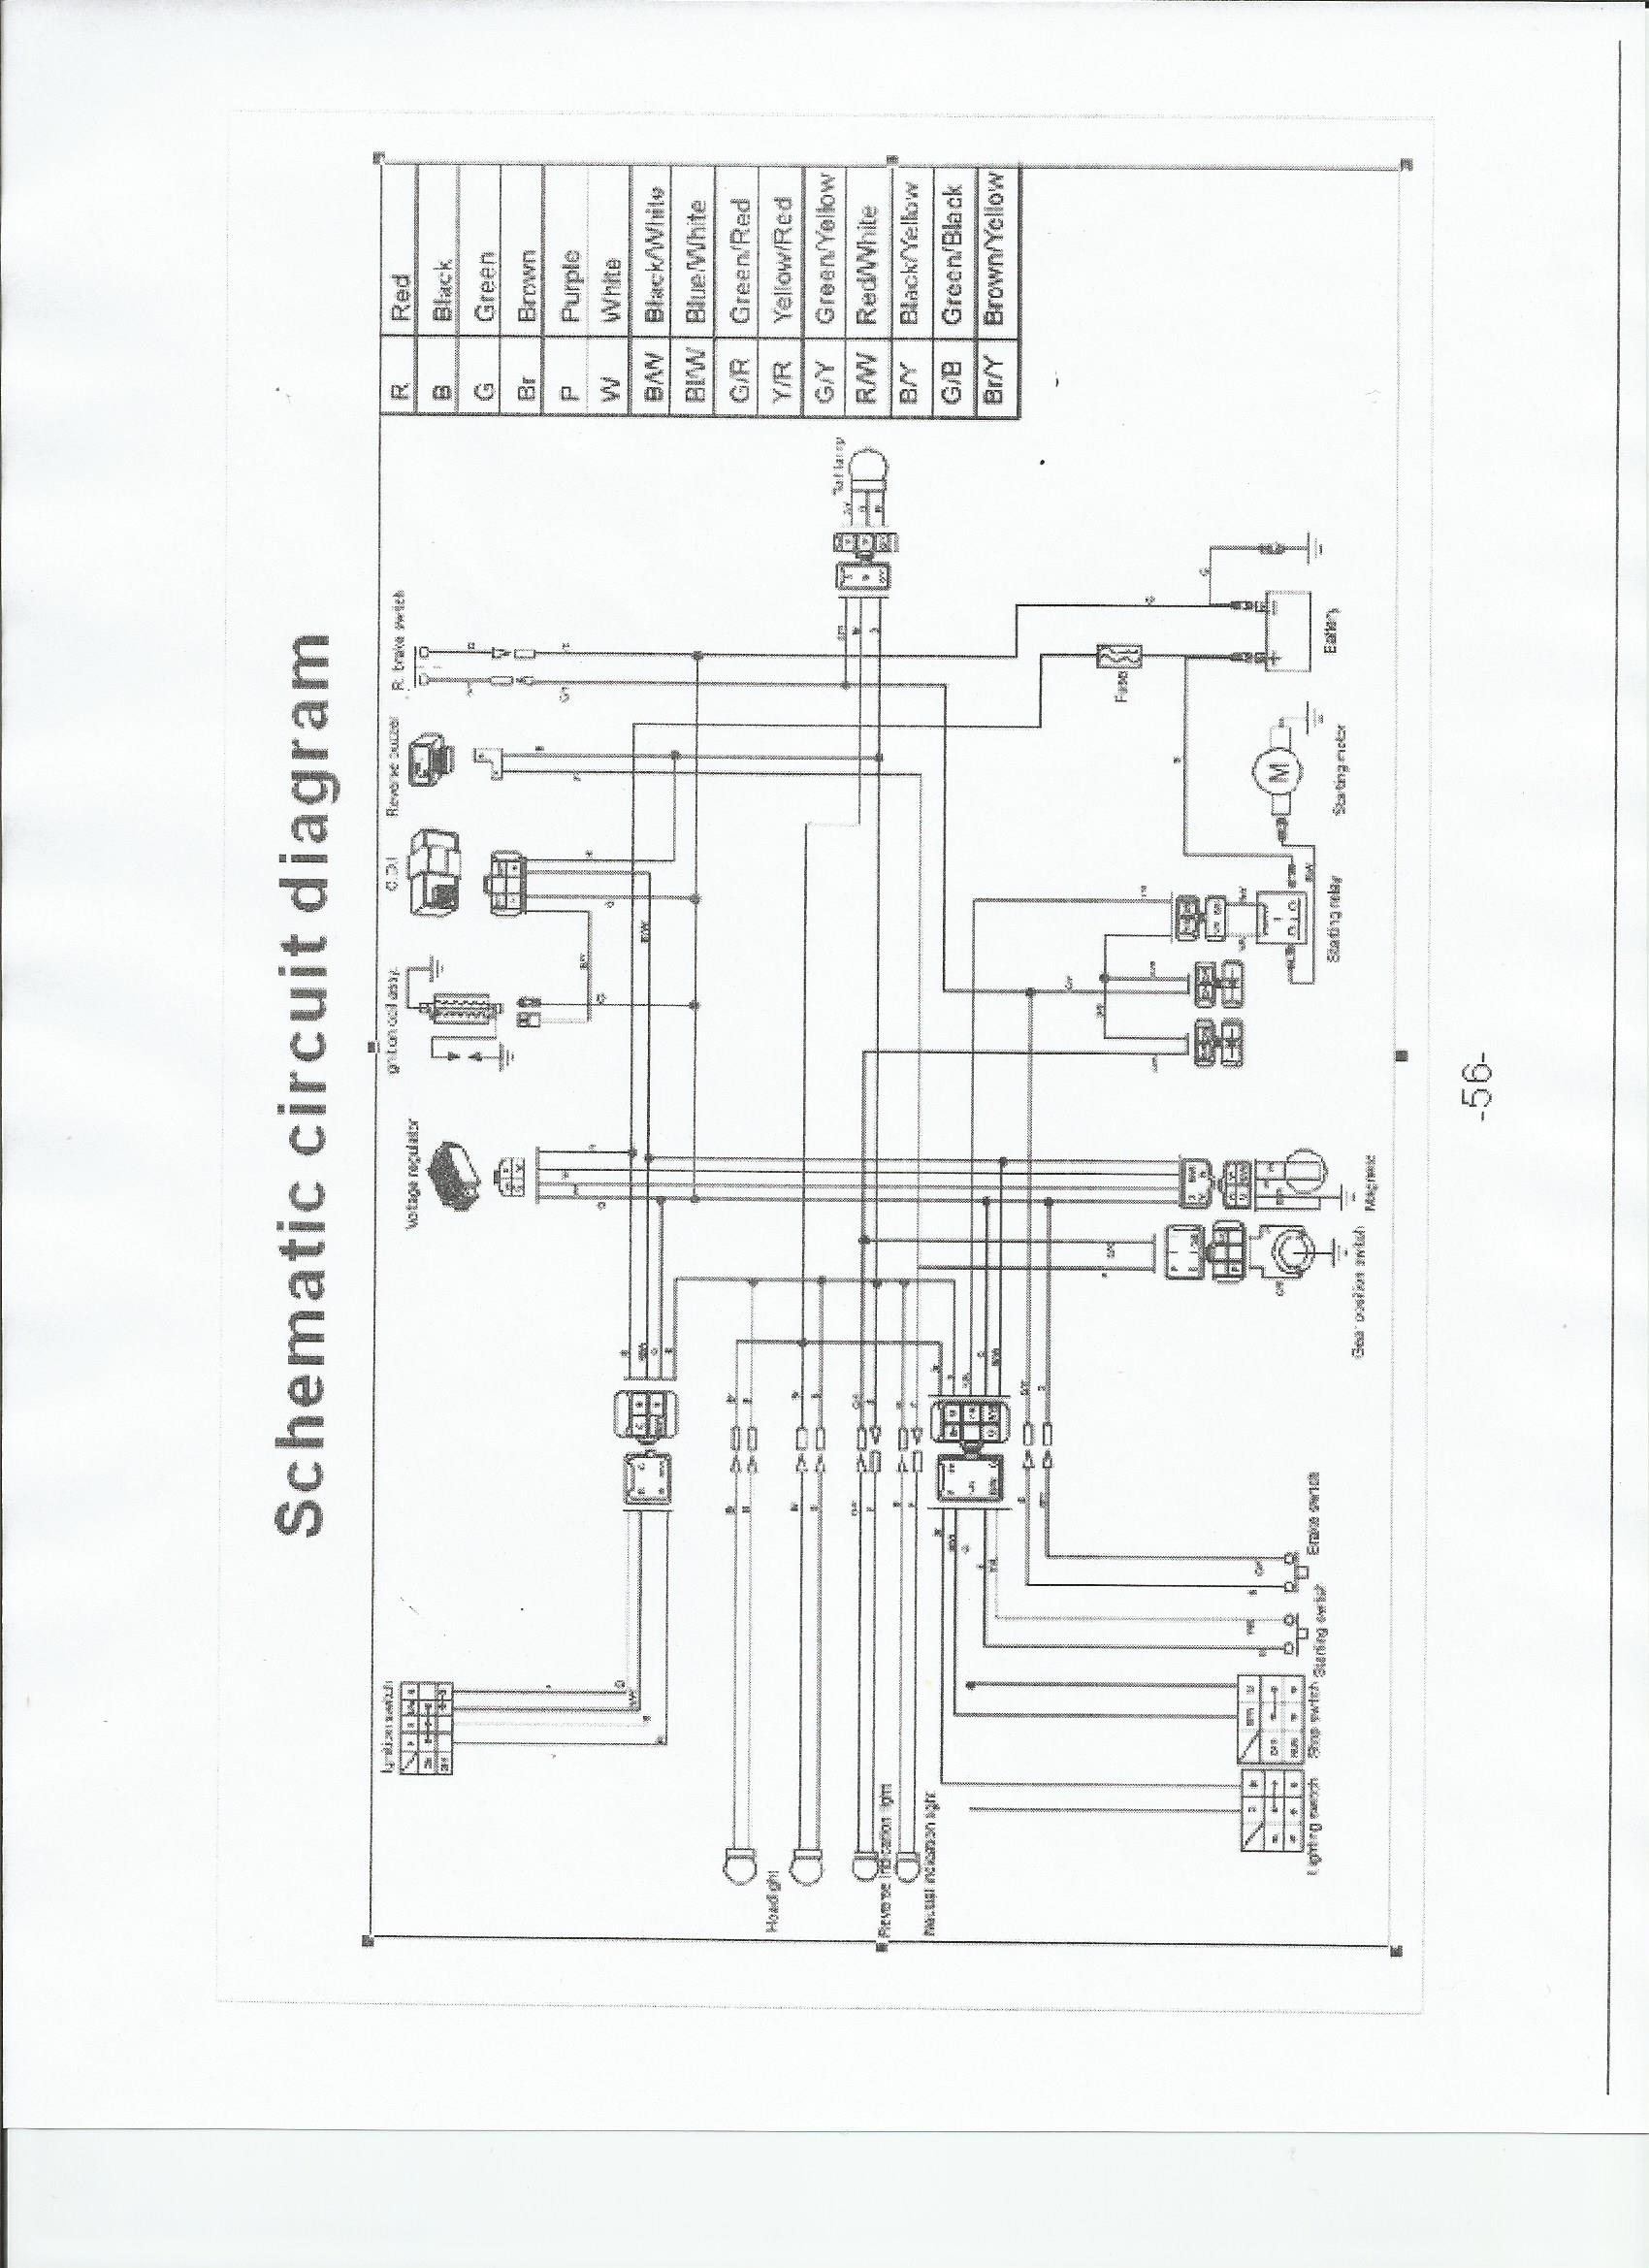 taotao wiring diagram wiring diagram today Tao Tao Scooter Wiring Diagram taotao wiring diagram